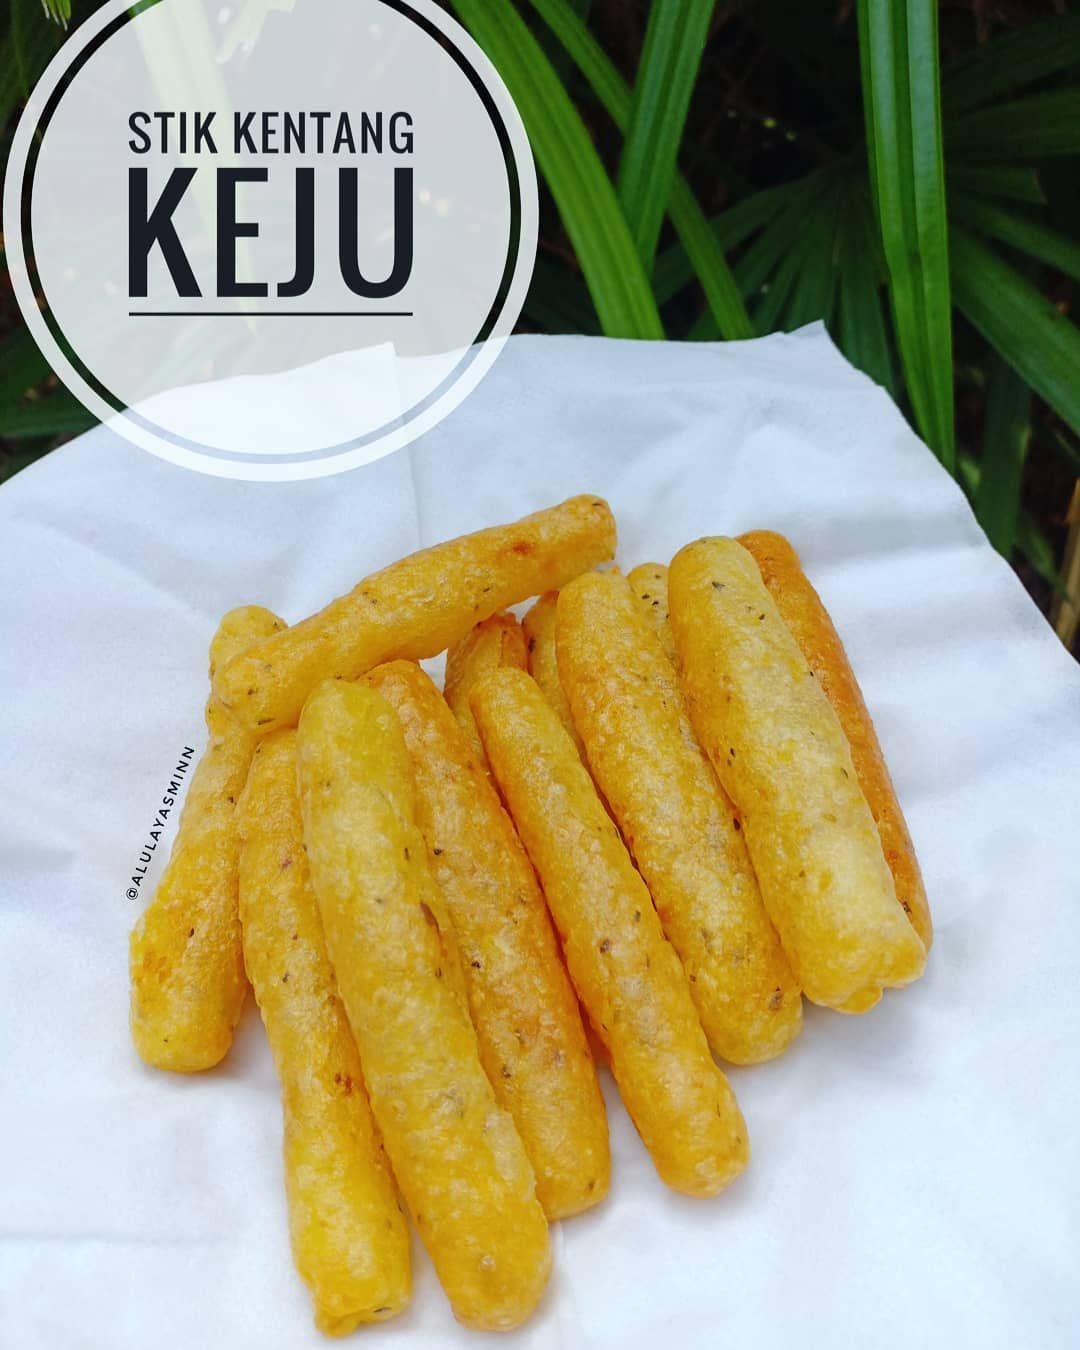 Stik Kentang Keju Menu Snack Alula 14 M Bahan 2 Bh Kentang Kukus Haluskan 2 Sdm Tepung Maizena 1 2 Spanish Appetizers Salami And Cheese Recipes